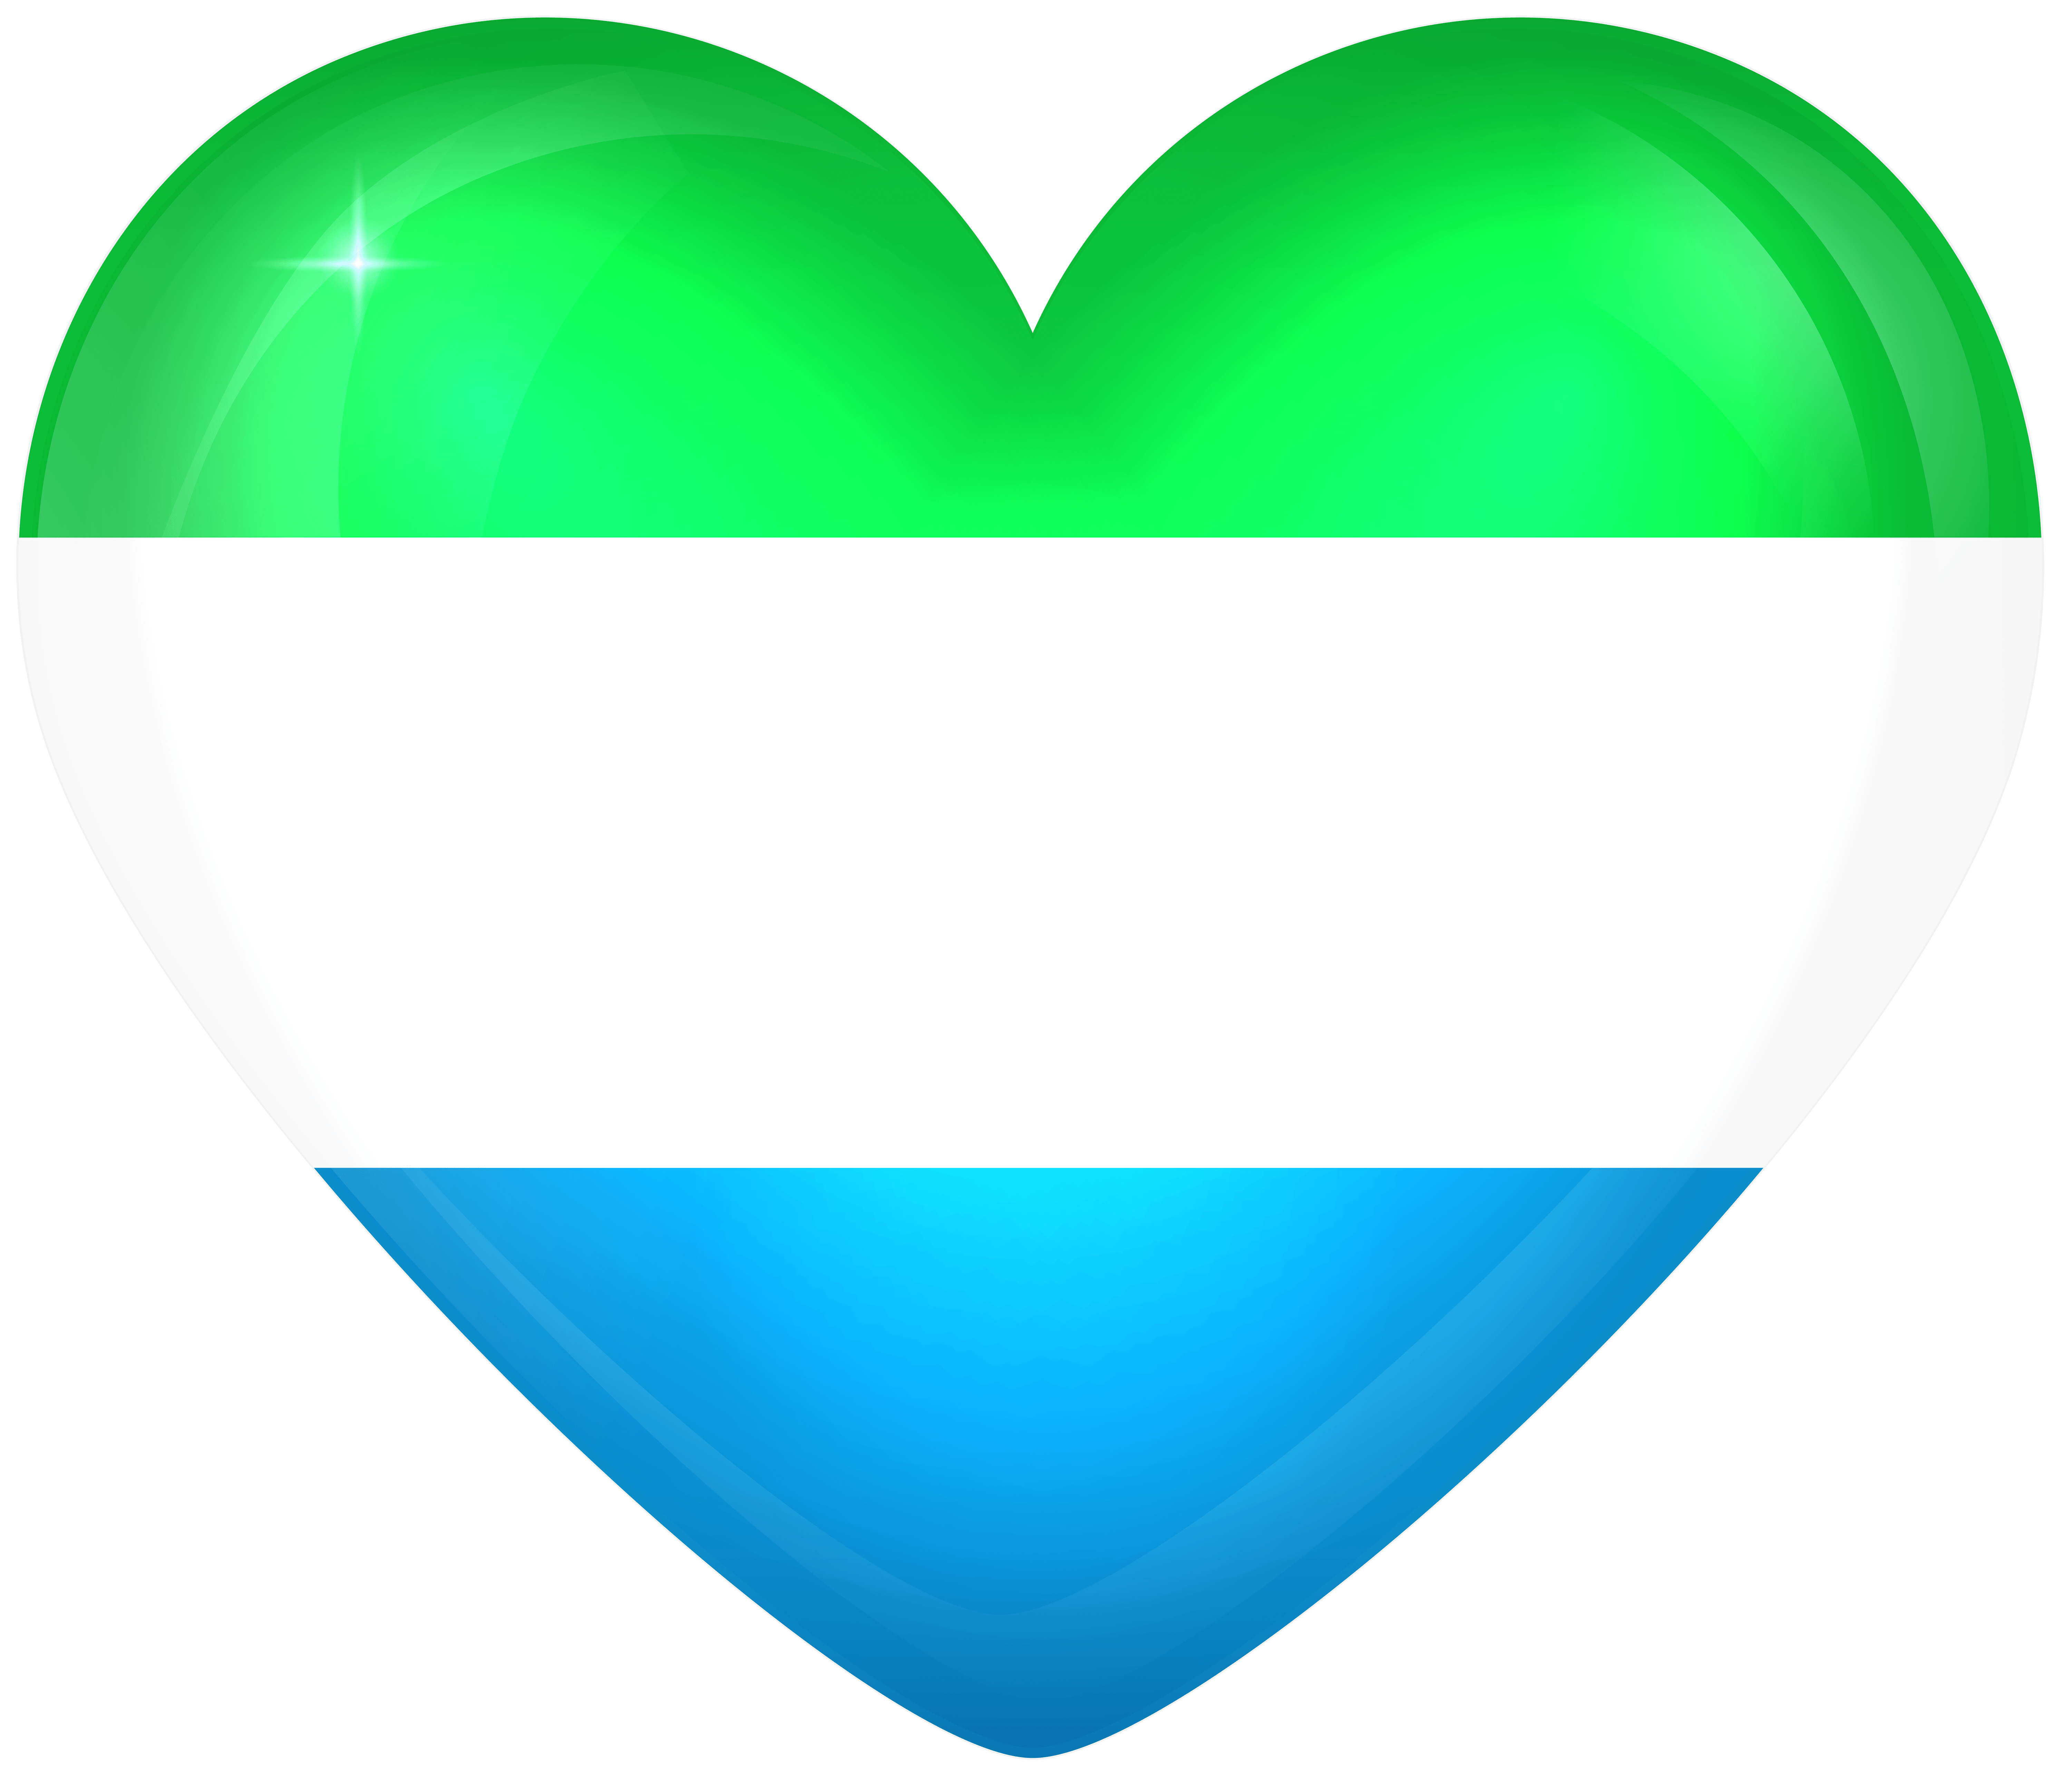 Sierra Leone Large Heart Flag | Gallery Yopriceville - High-Quality ...